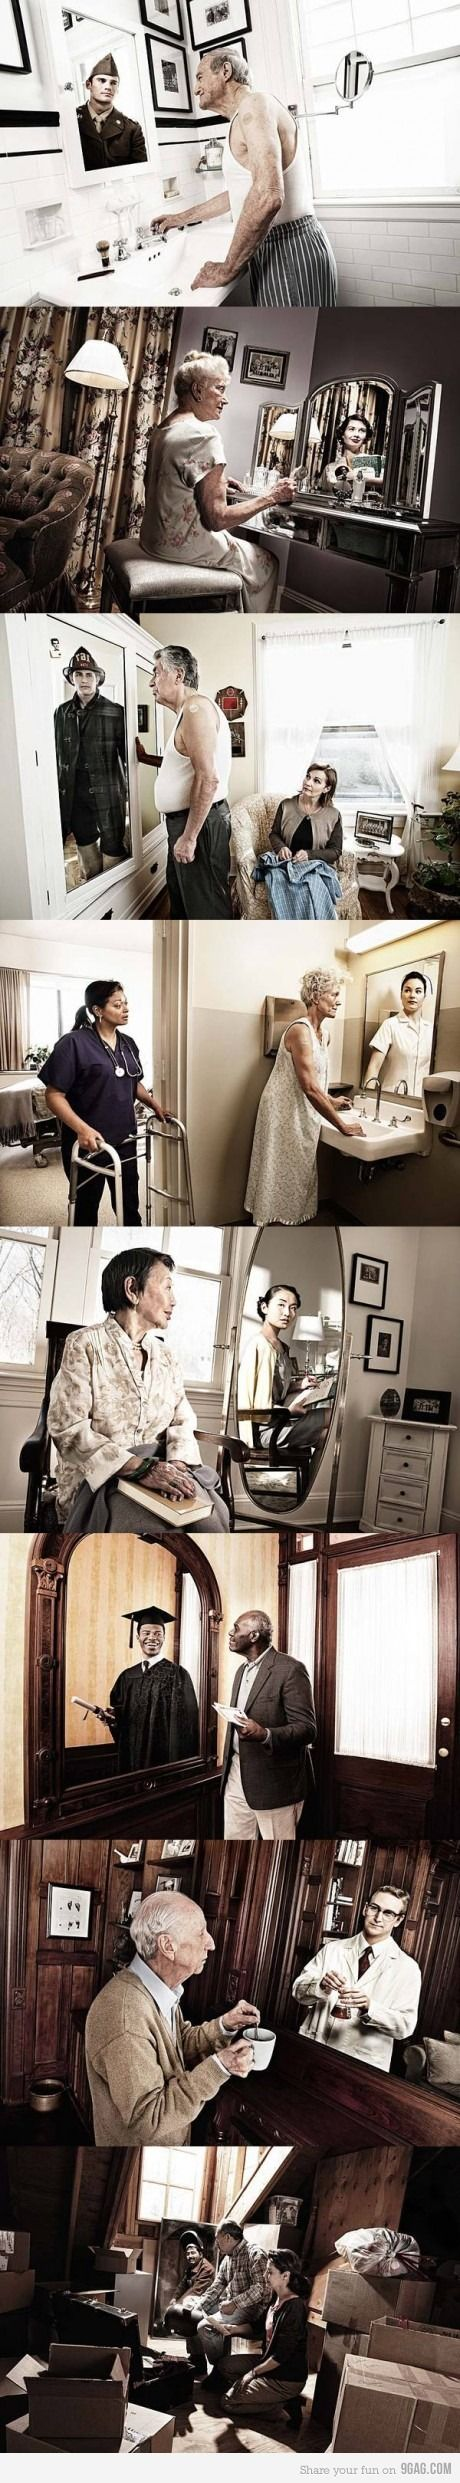 "Novartis ""Reflections"" Campaign. Sums up why I think oral history is so interesting and important"